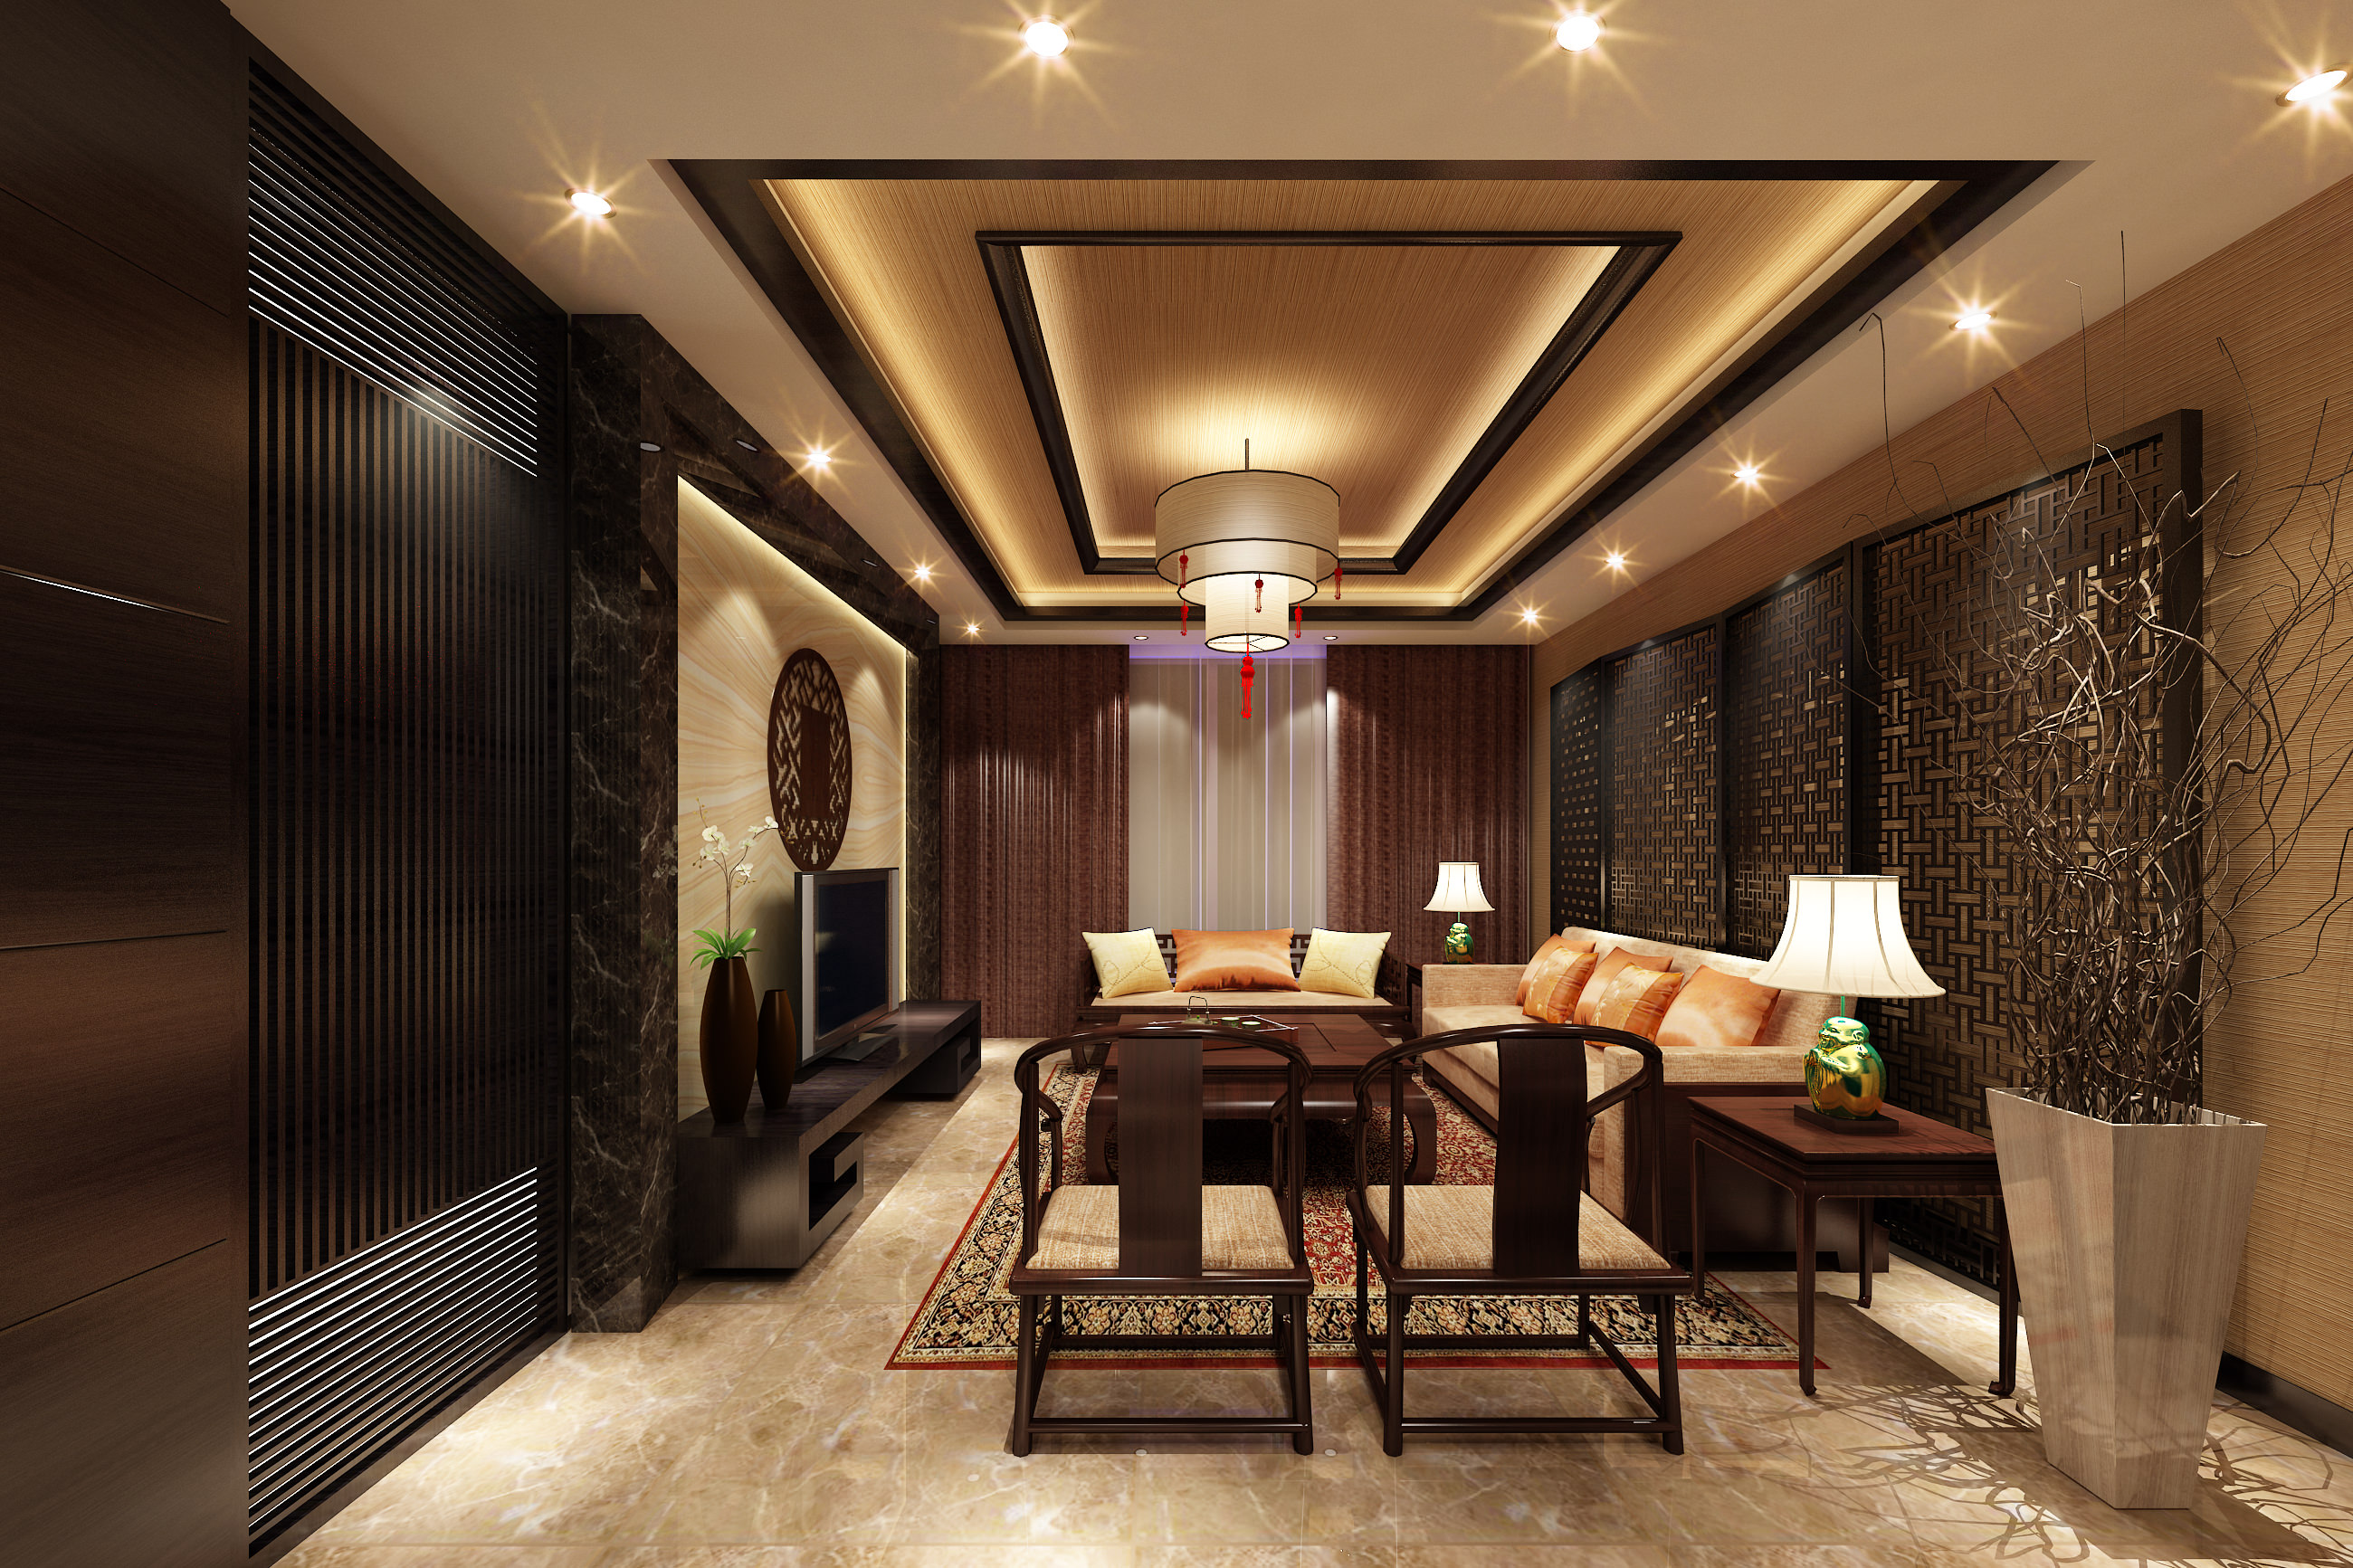 Model Living Room Design Collection Living Room And Bedroom Collection 2 3d Model Max Tga